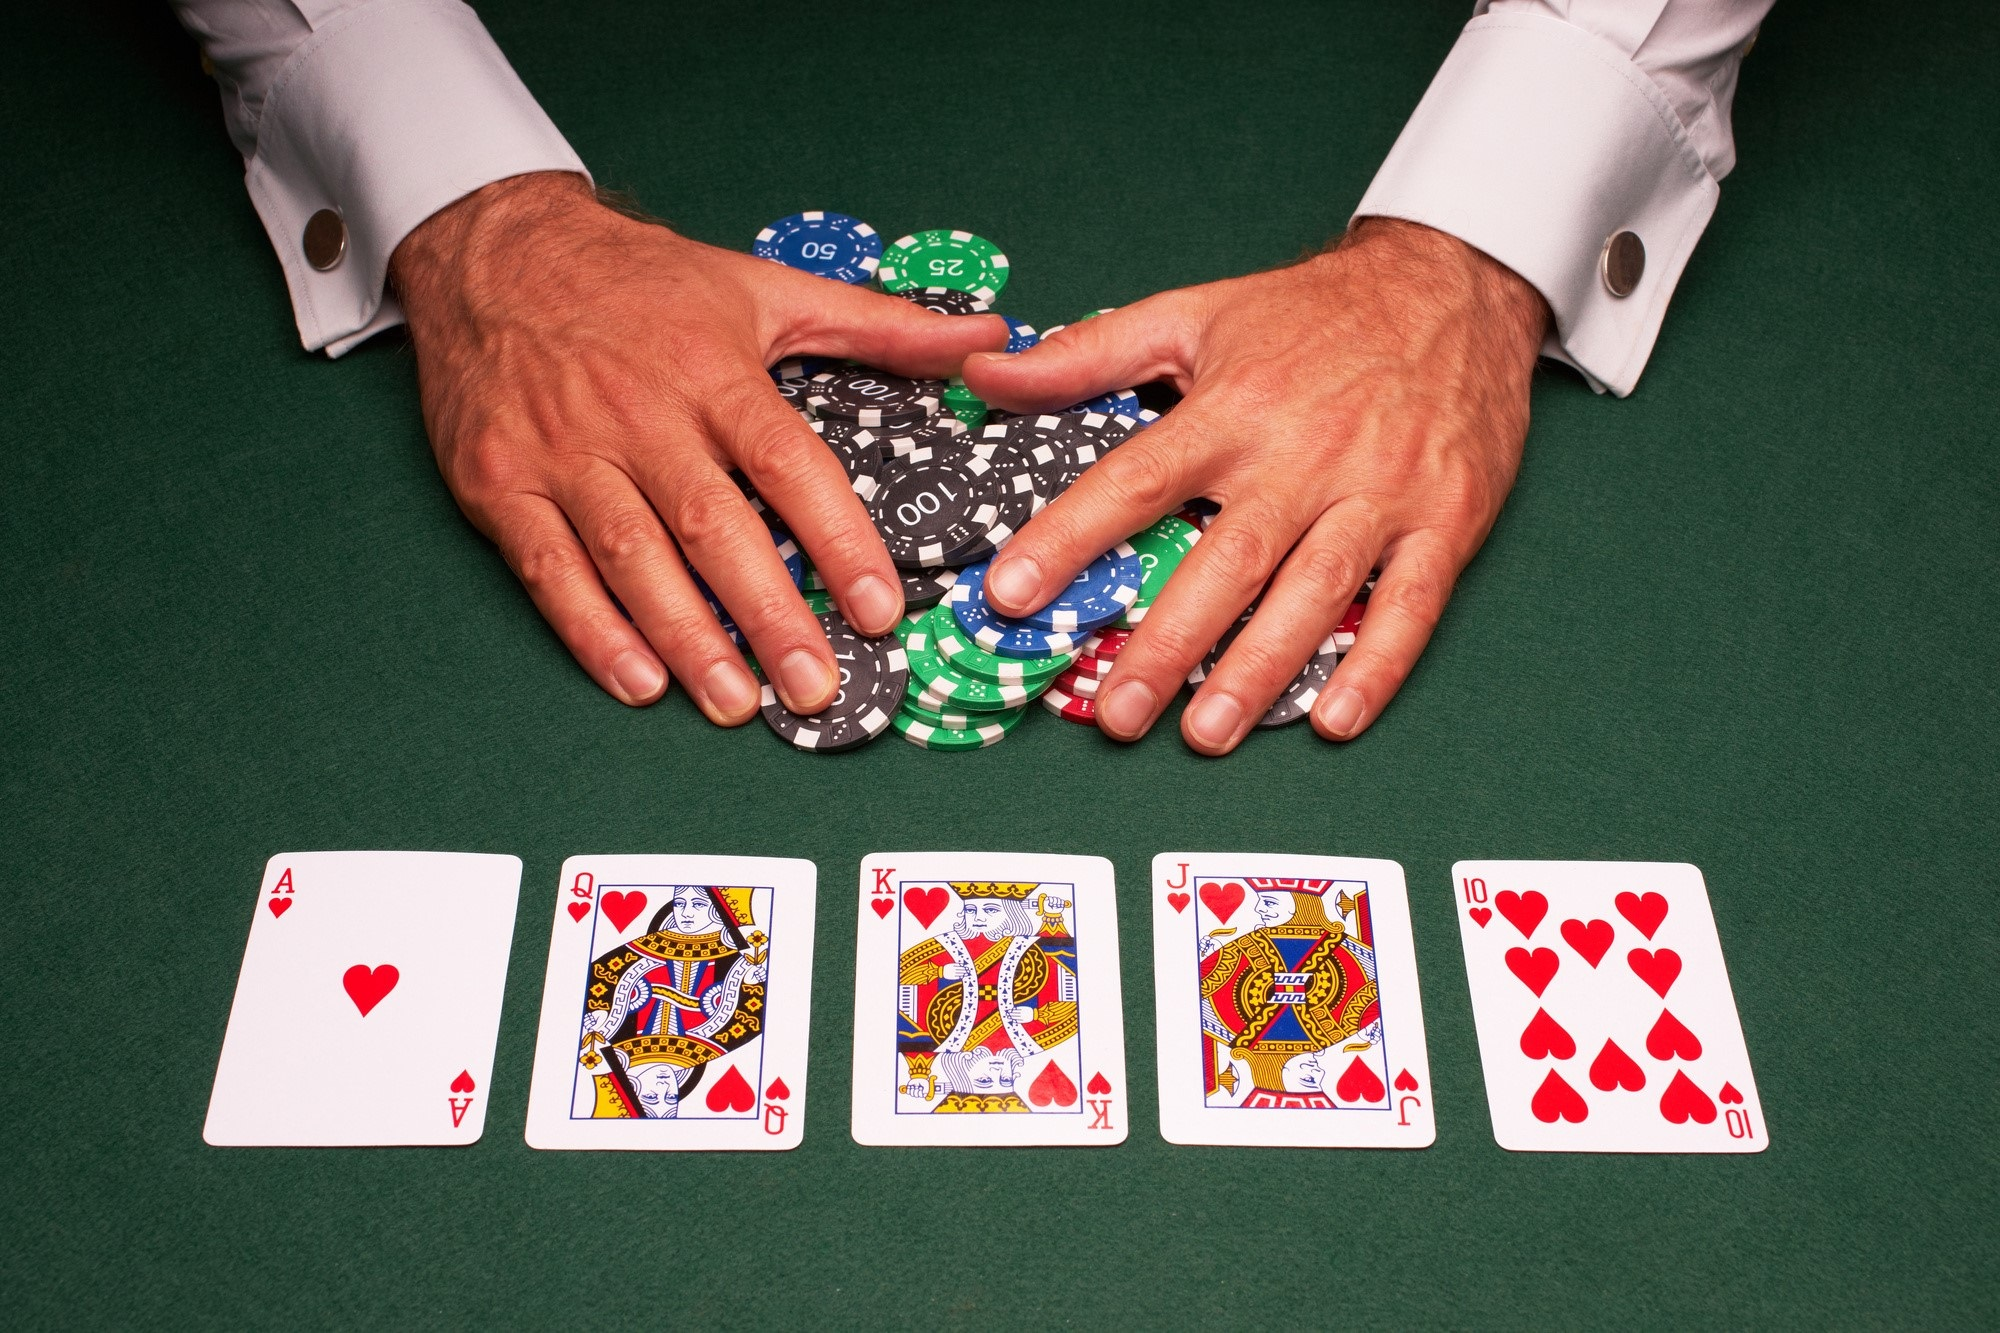 Top 5 Best Ways To Make Money Through Poker